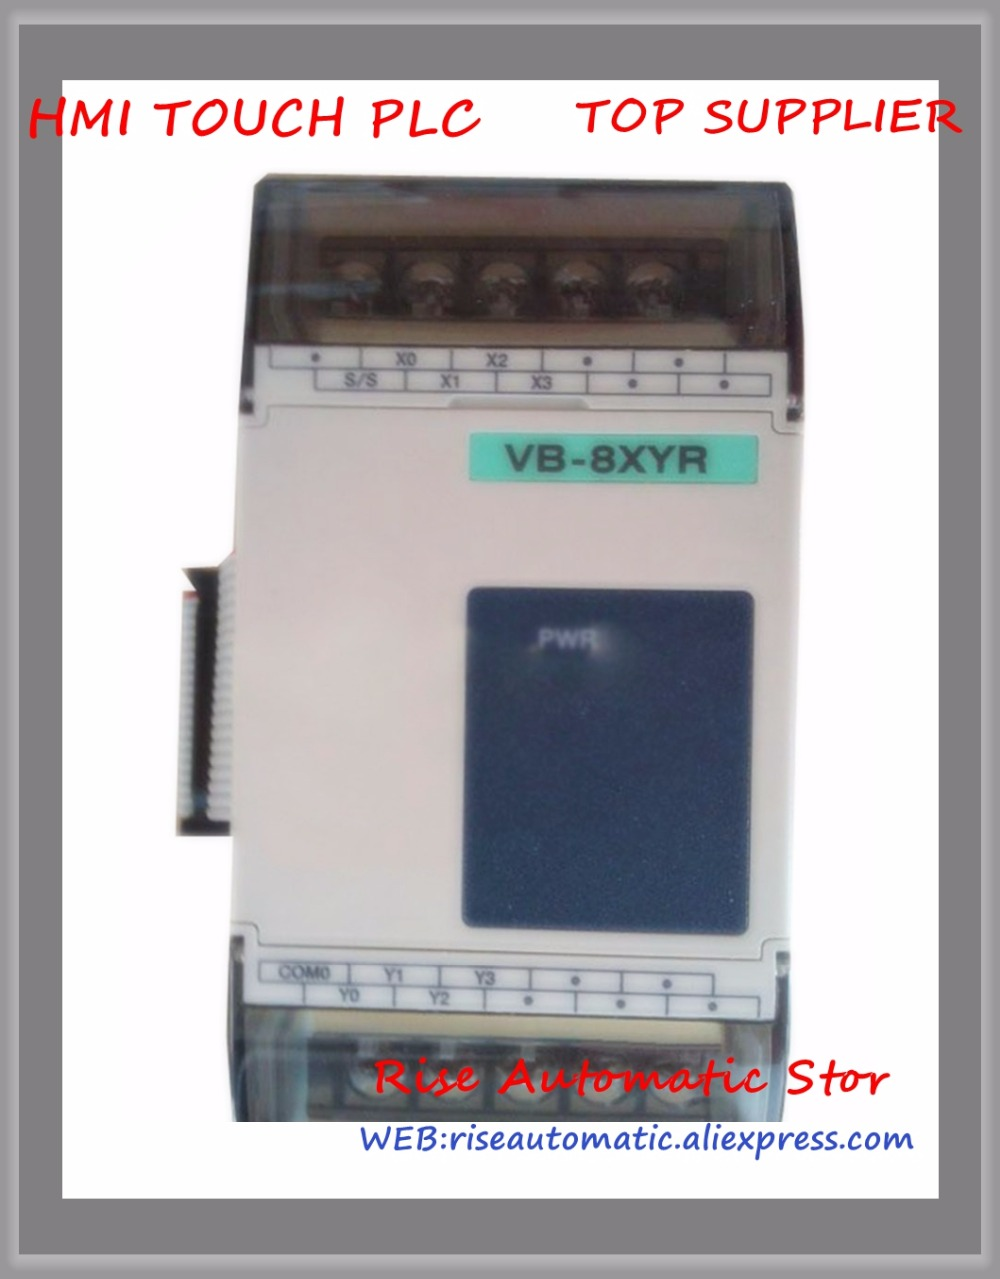 Brand New Original VB-8XYR PLC 24VDC 4 point DC24V input 4 point output Expansion Module 6es7284 3bd23 0xb0 em 284 3bd23 0xb0 cpu284 3r ac dc rly compatible simatic s7 200 plc module fast shipping